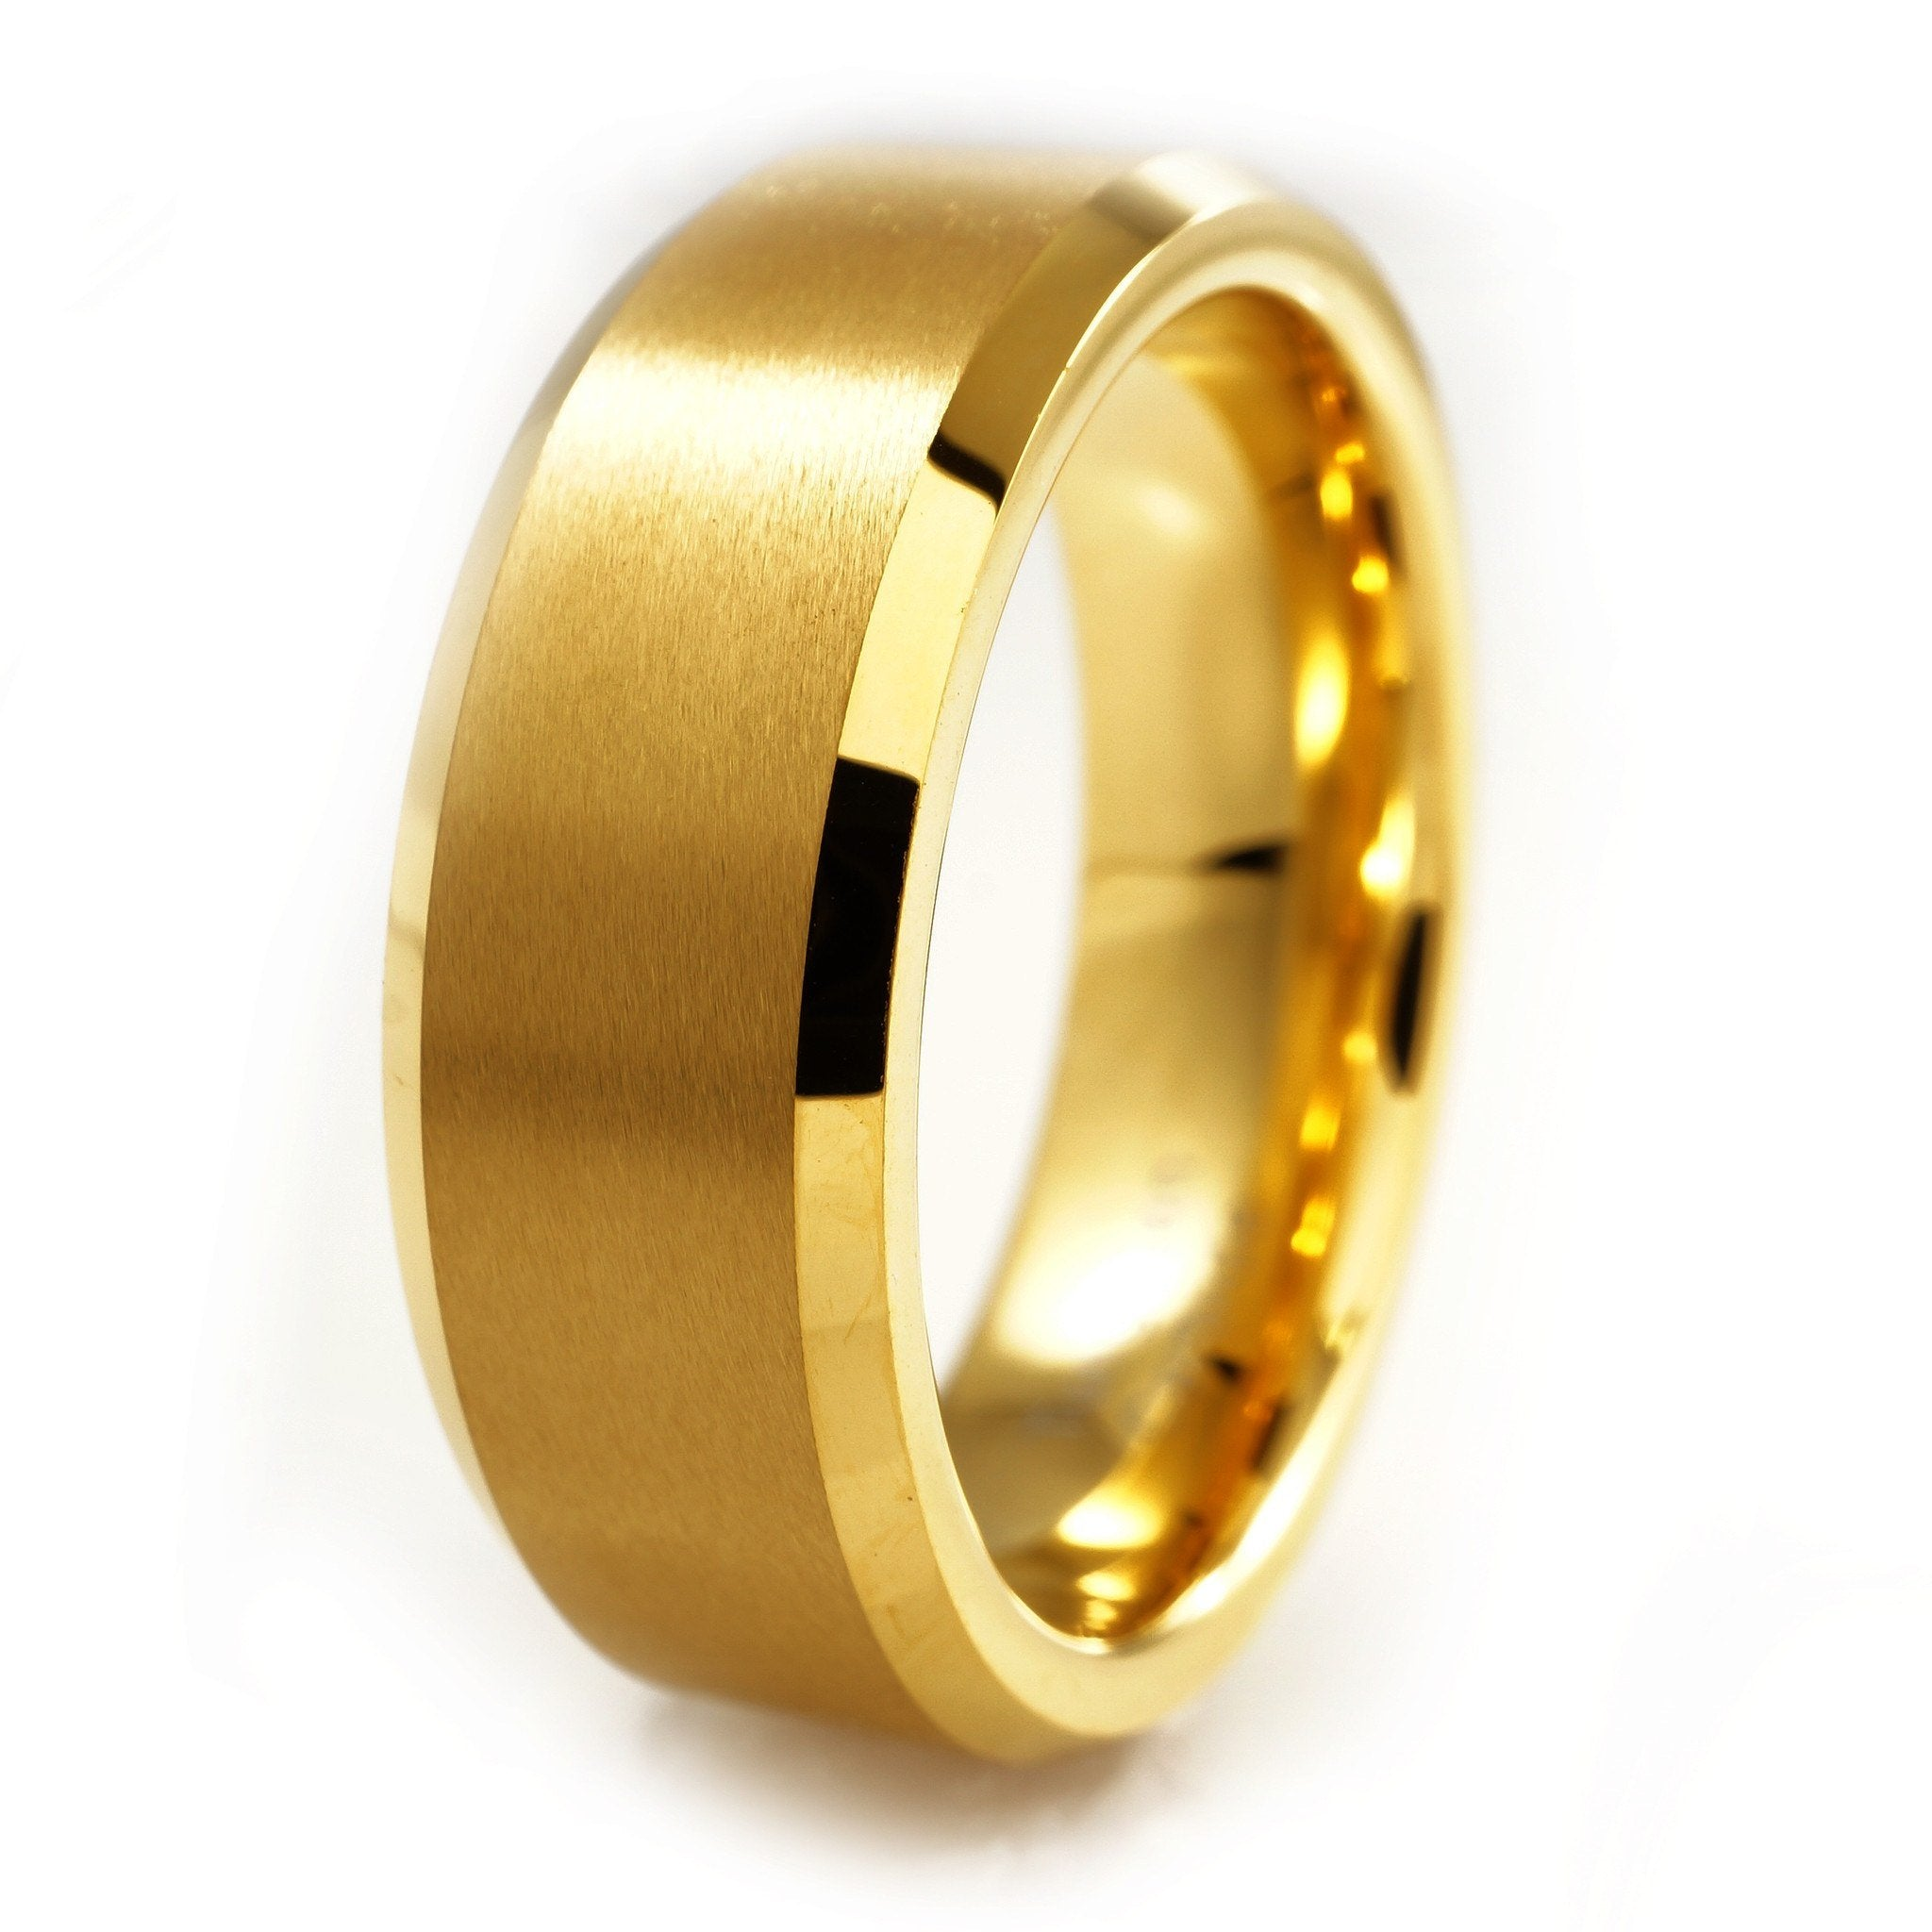 Affordable 18K Gold Tungsten Carbide Ring 8MM - White Background